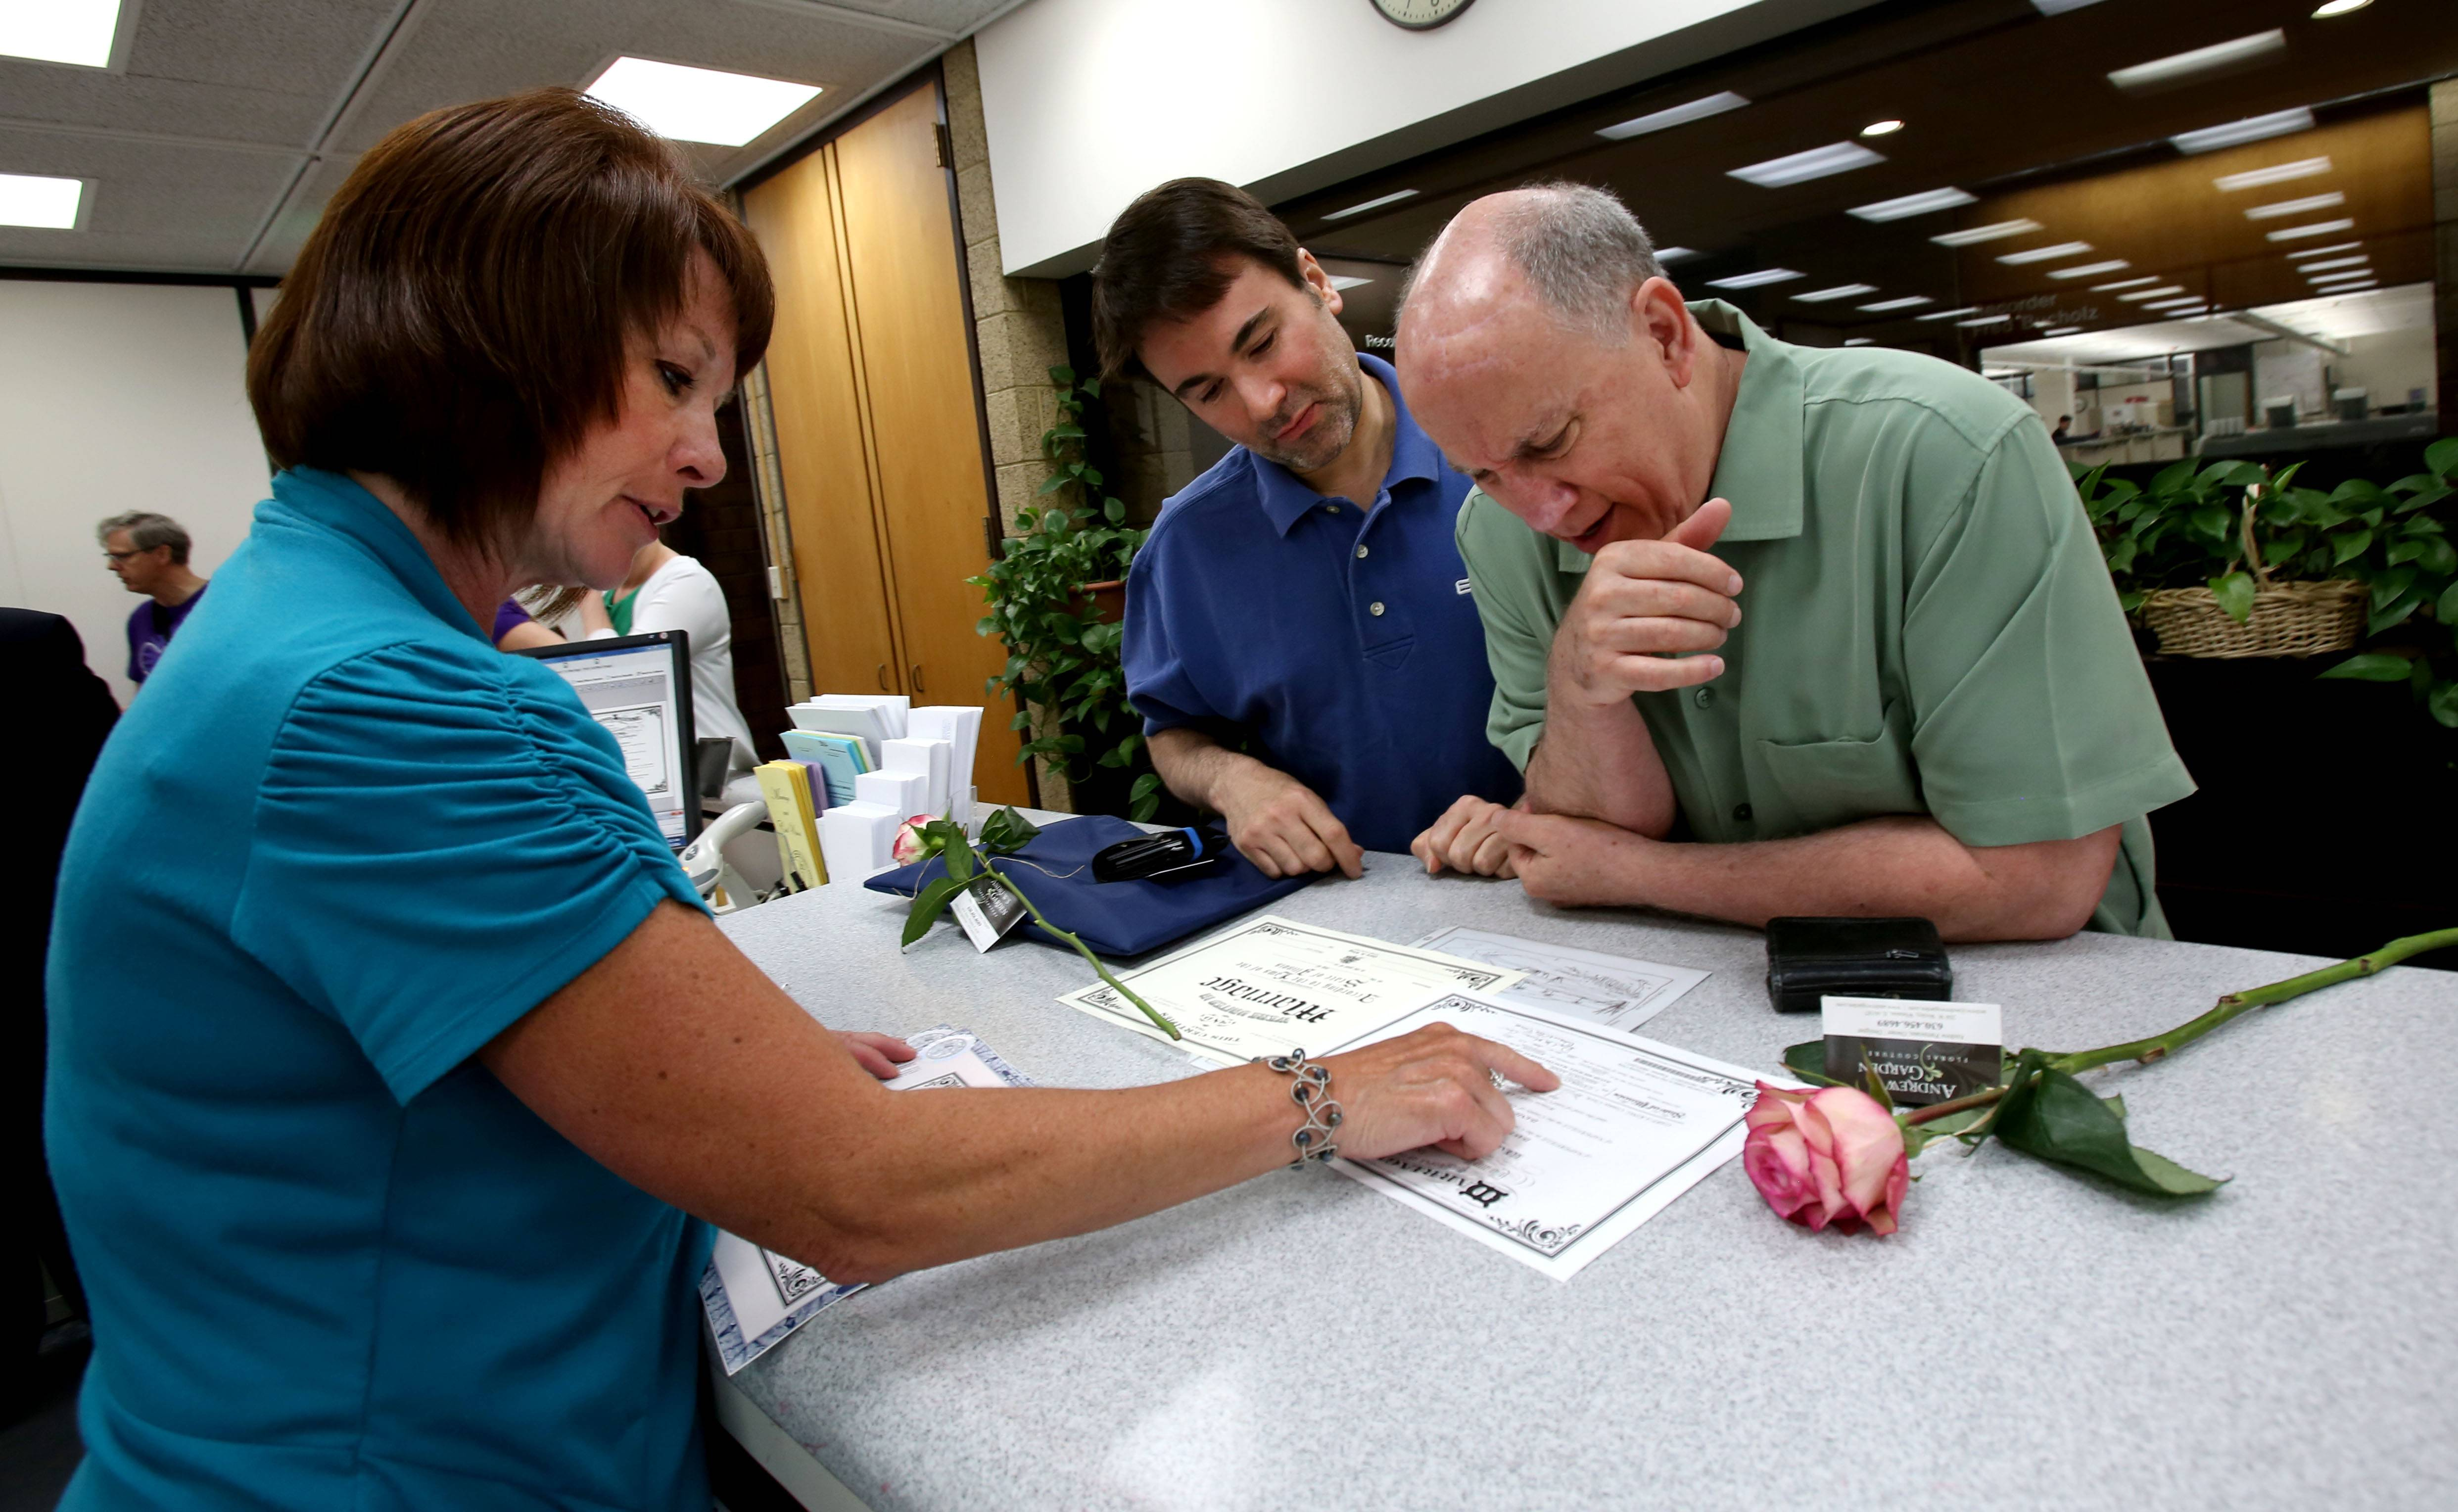 Shelley Bellock, left, deputy clerk, helps David Mancini-Conway, center, and Dan McGuire, right, of Naperville with their marriage license at the DuPage County Clerk's office in Wheaton on Monday.